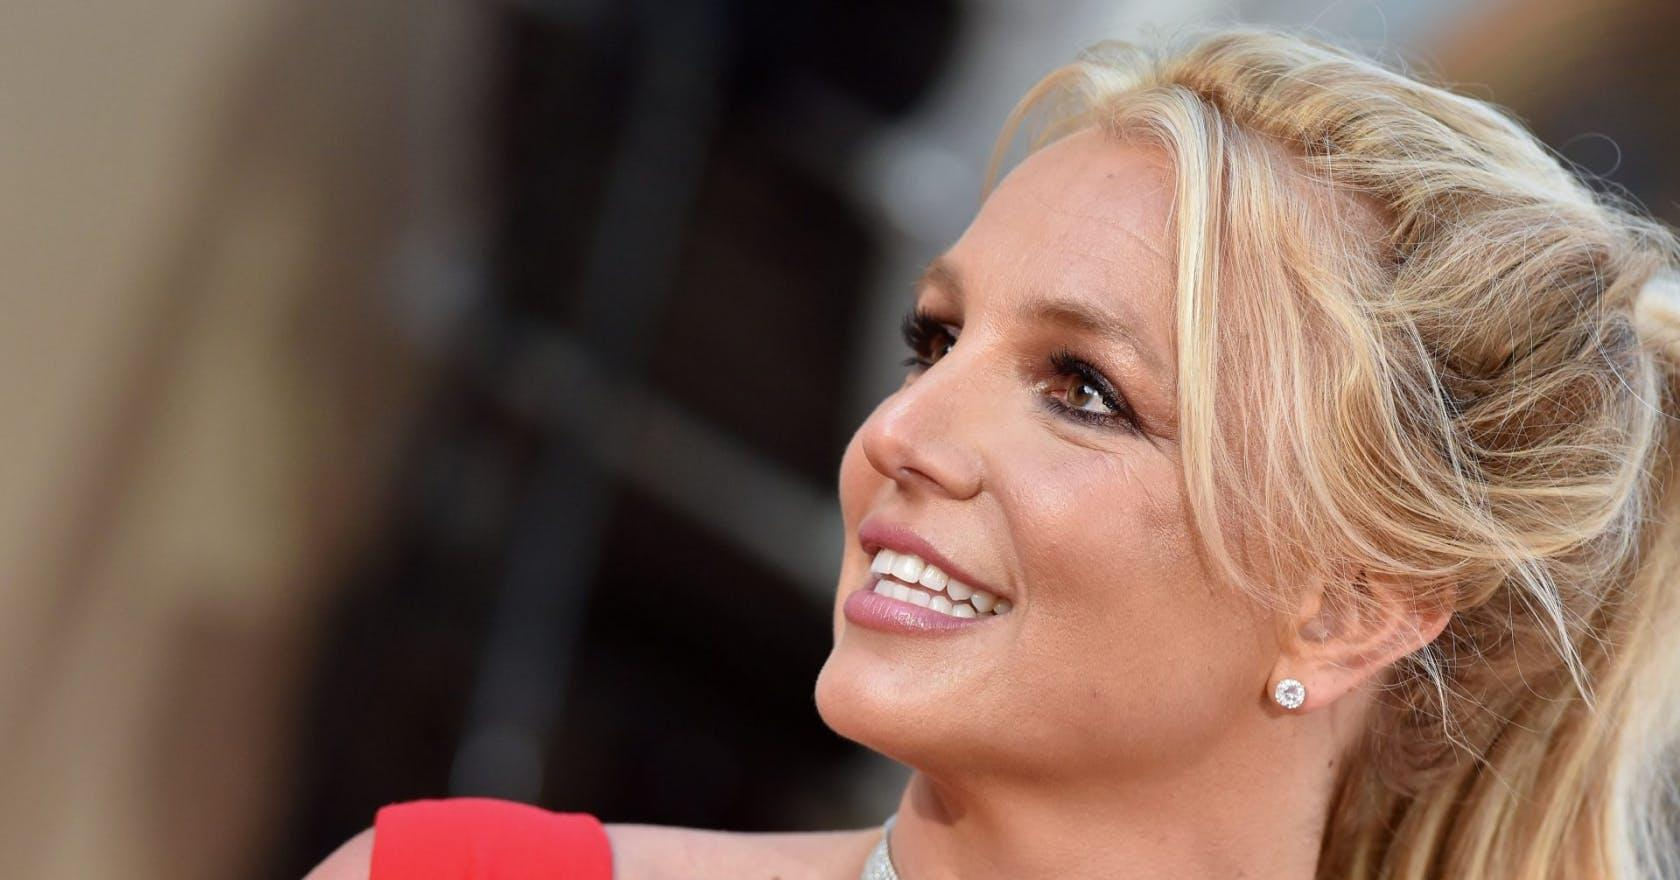 Netflix Is Working on Its Own Documentary About Britney Spears